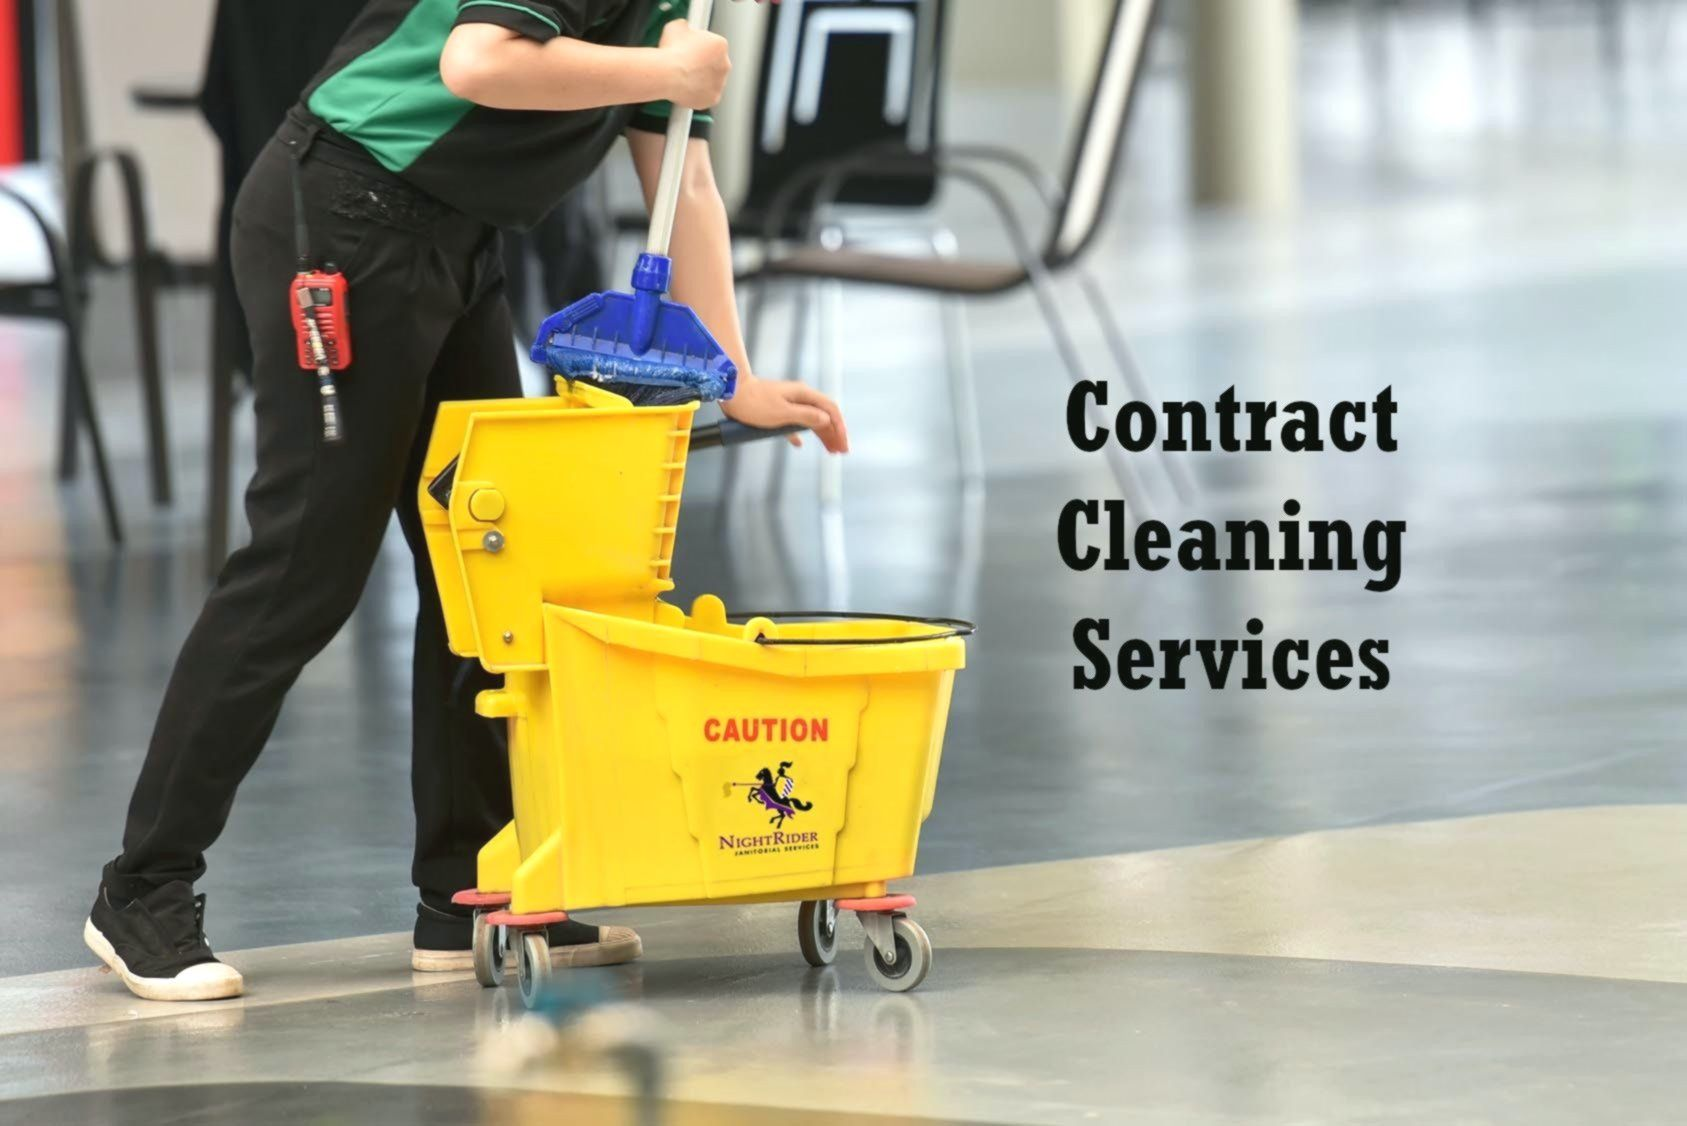 Insurance Office Website Family Binder Accounts Monthly Bills Services Utilitie Janitorial Services Cleaning Service Commercial Cleaning Services